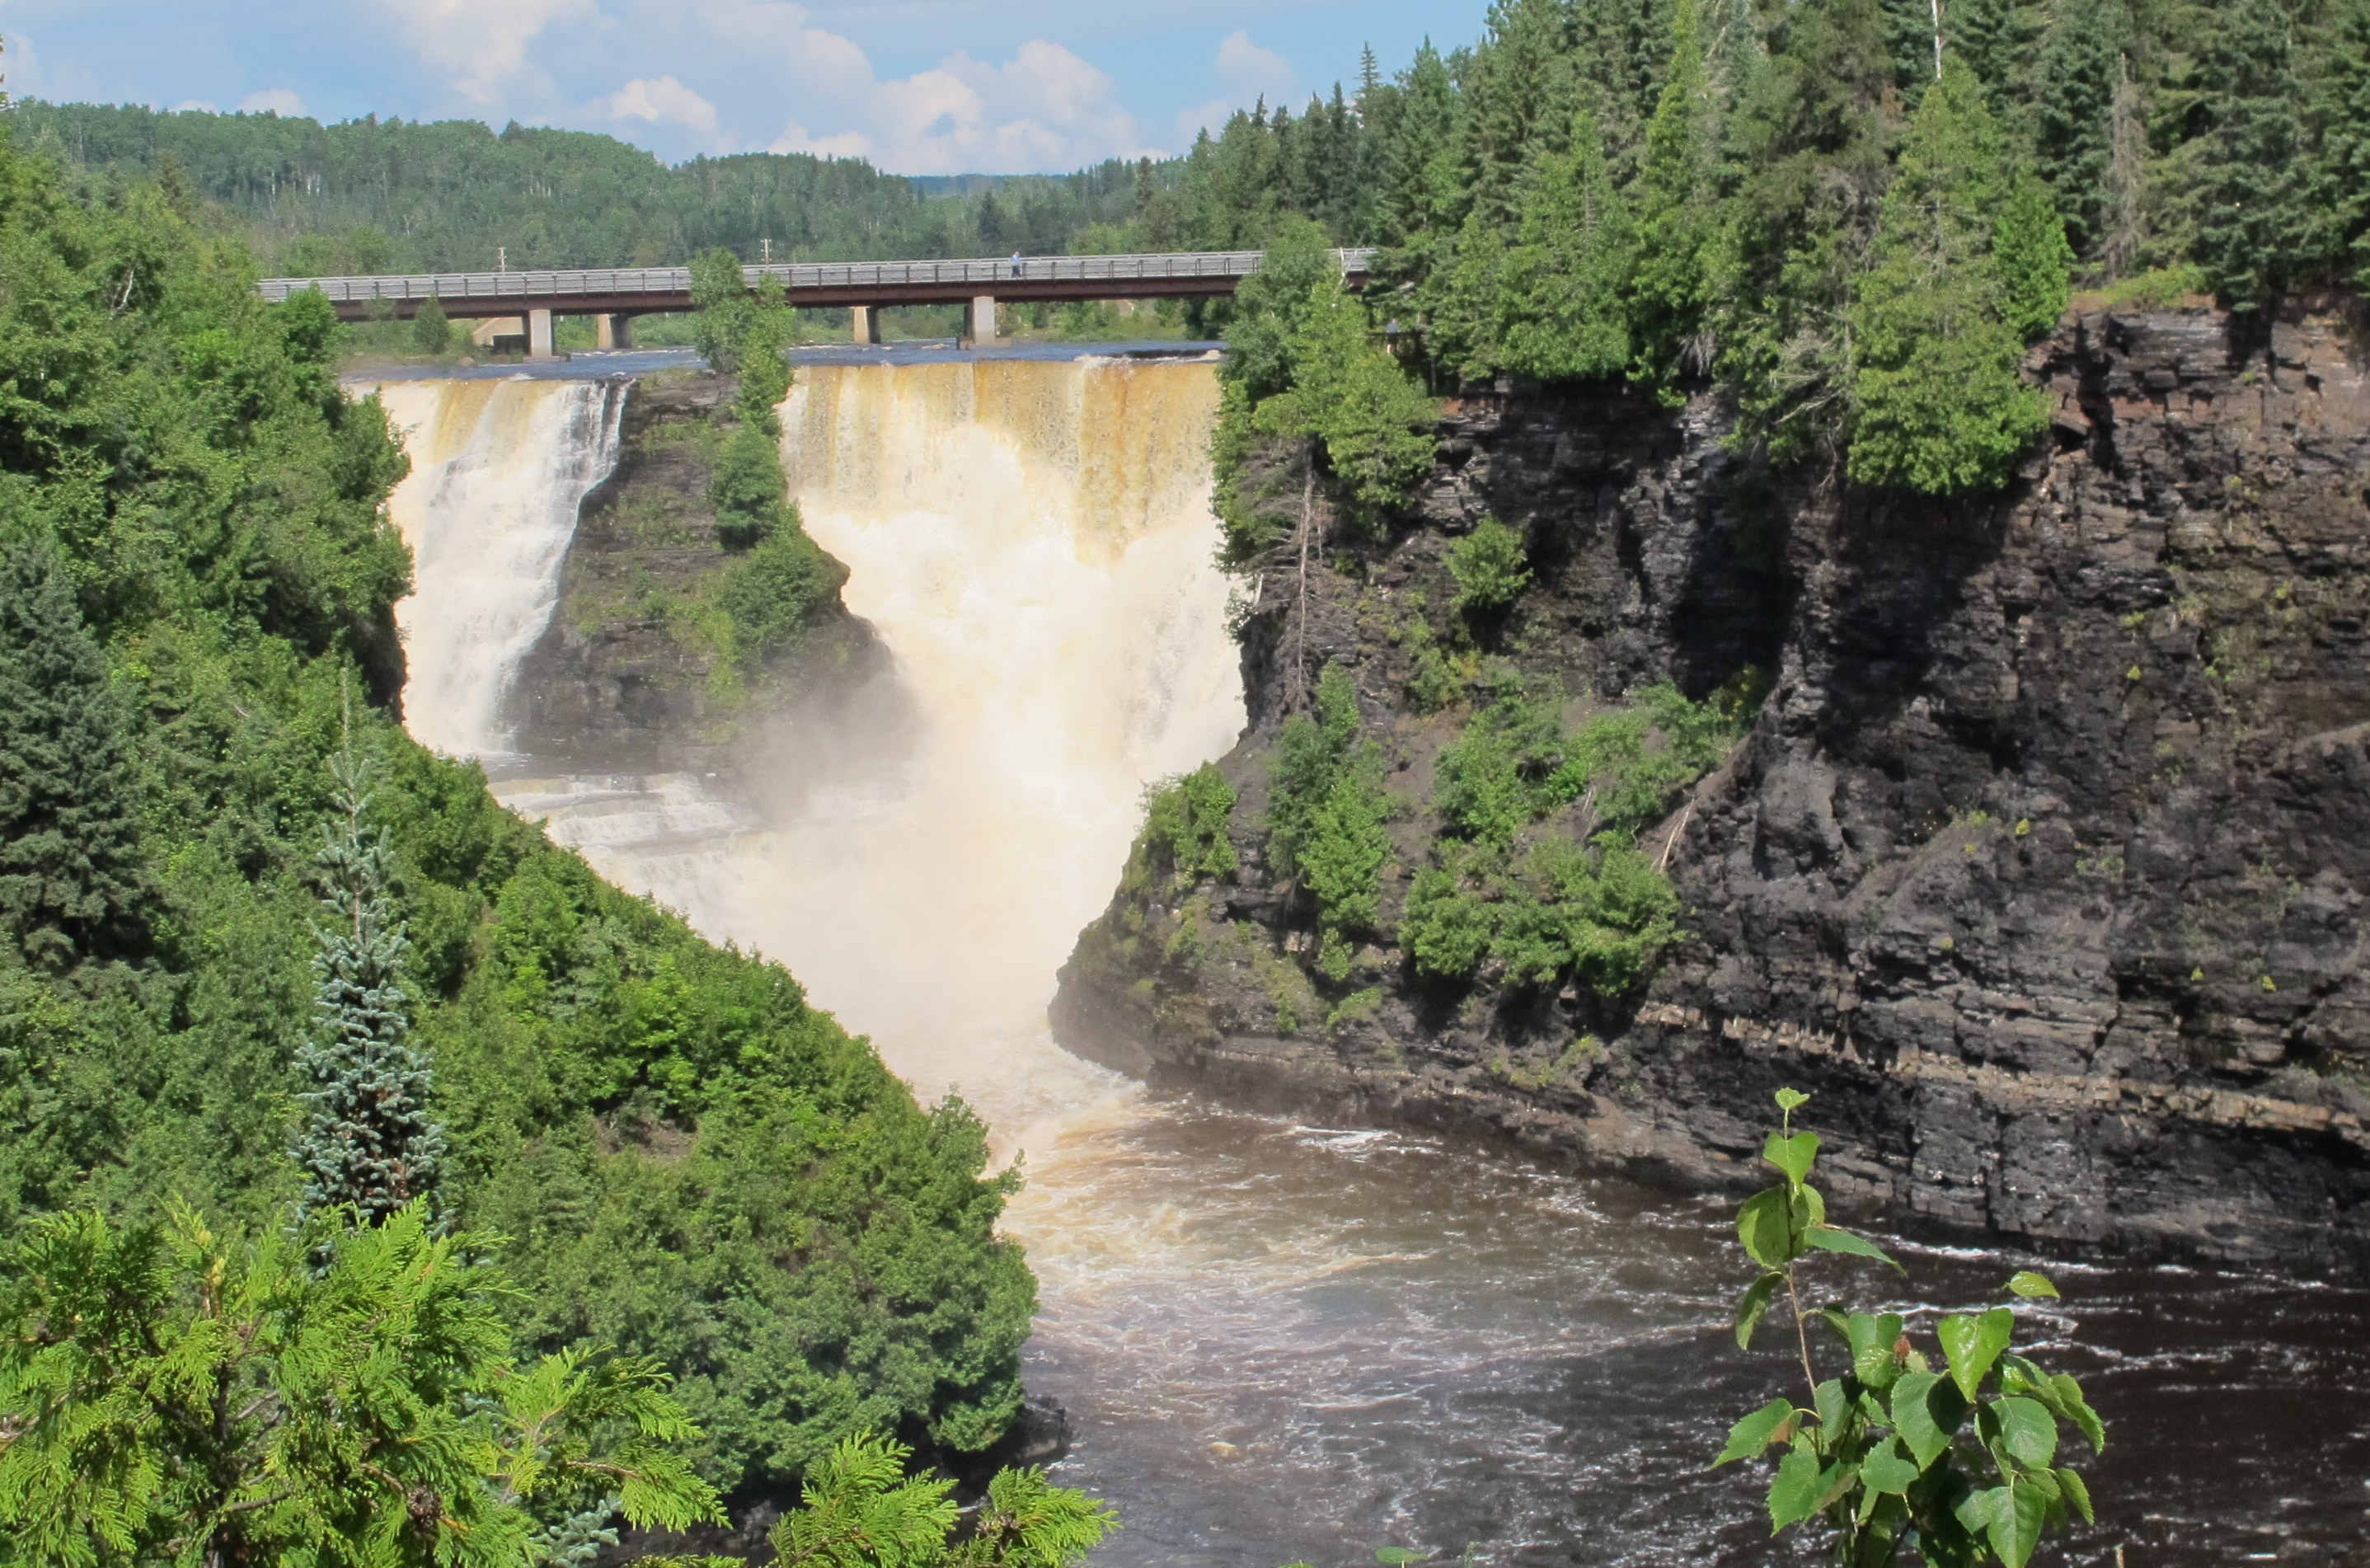 Kakabeka Falls is a glorious spot to admire nature that's just west of Thunder Bay. JIM BYERS PHOTO